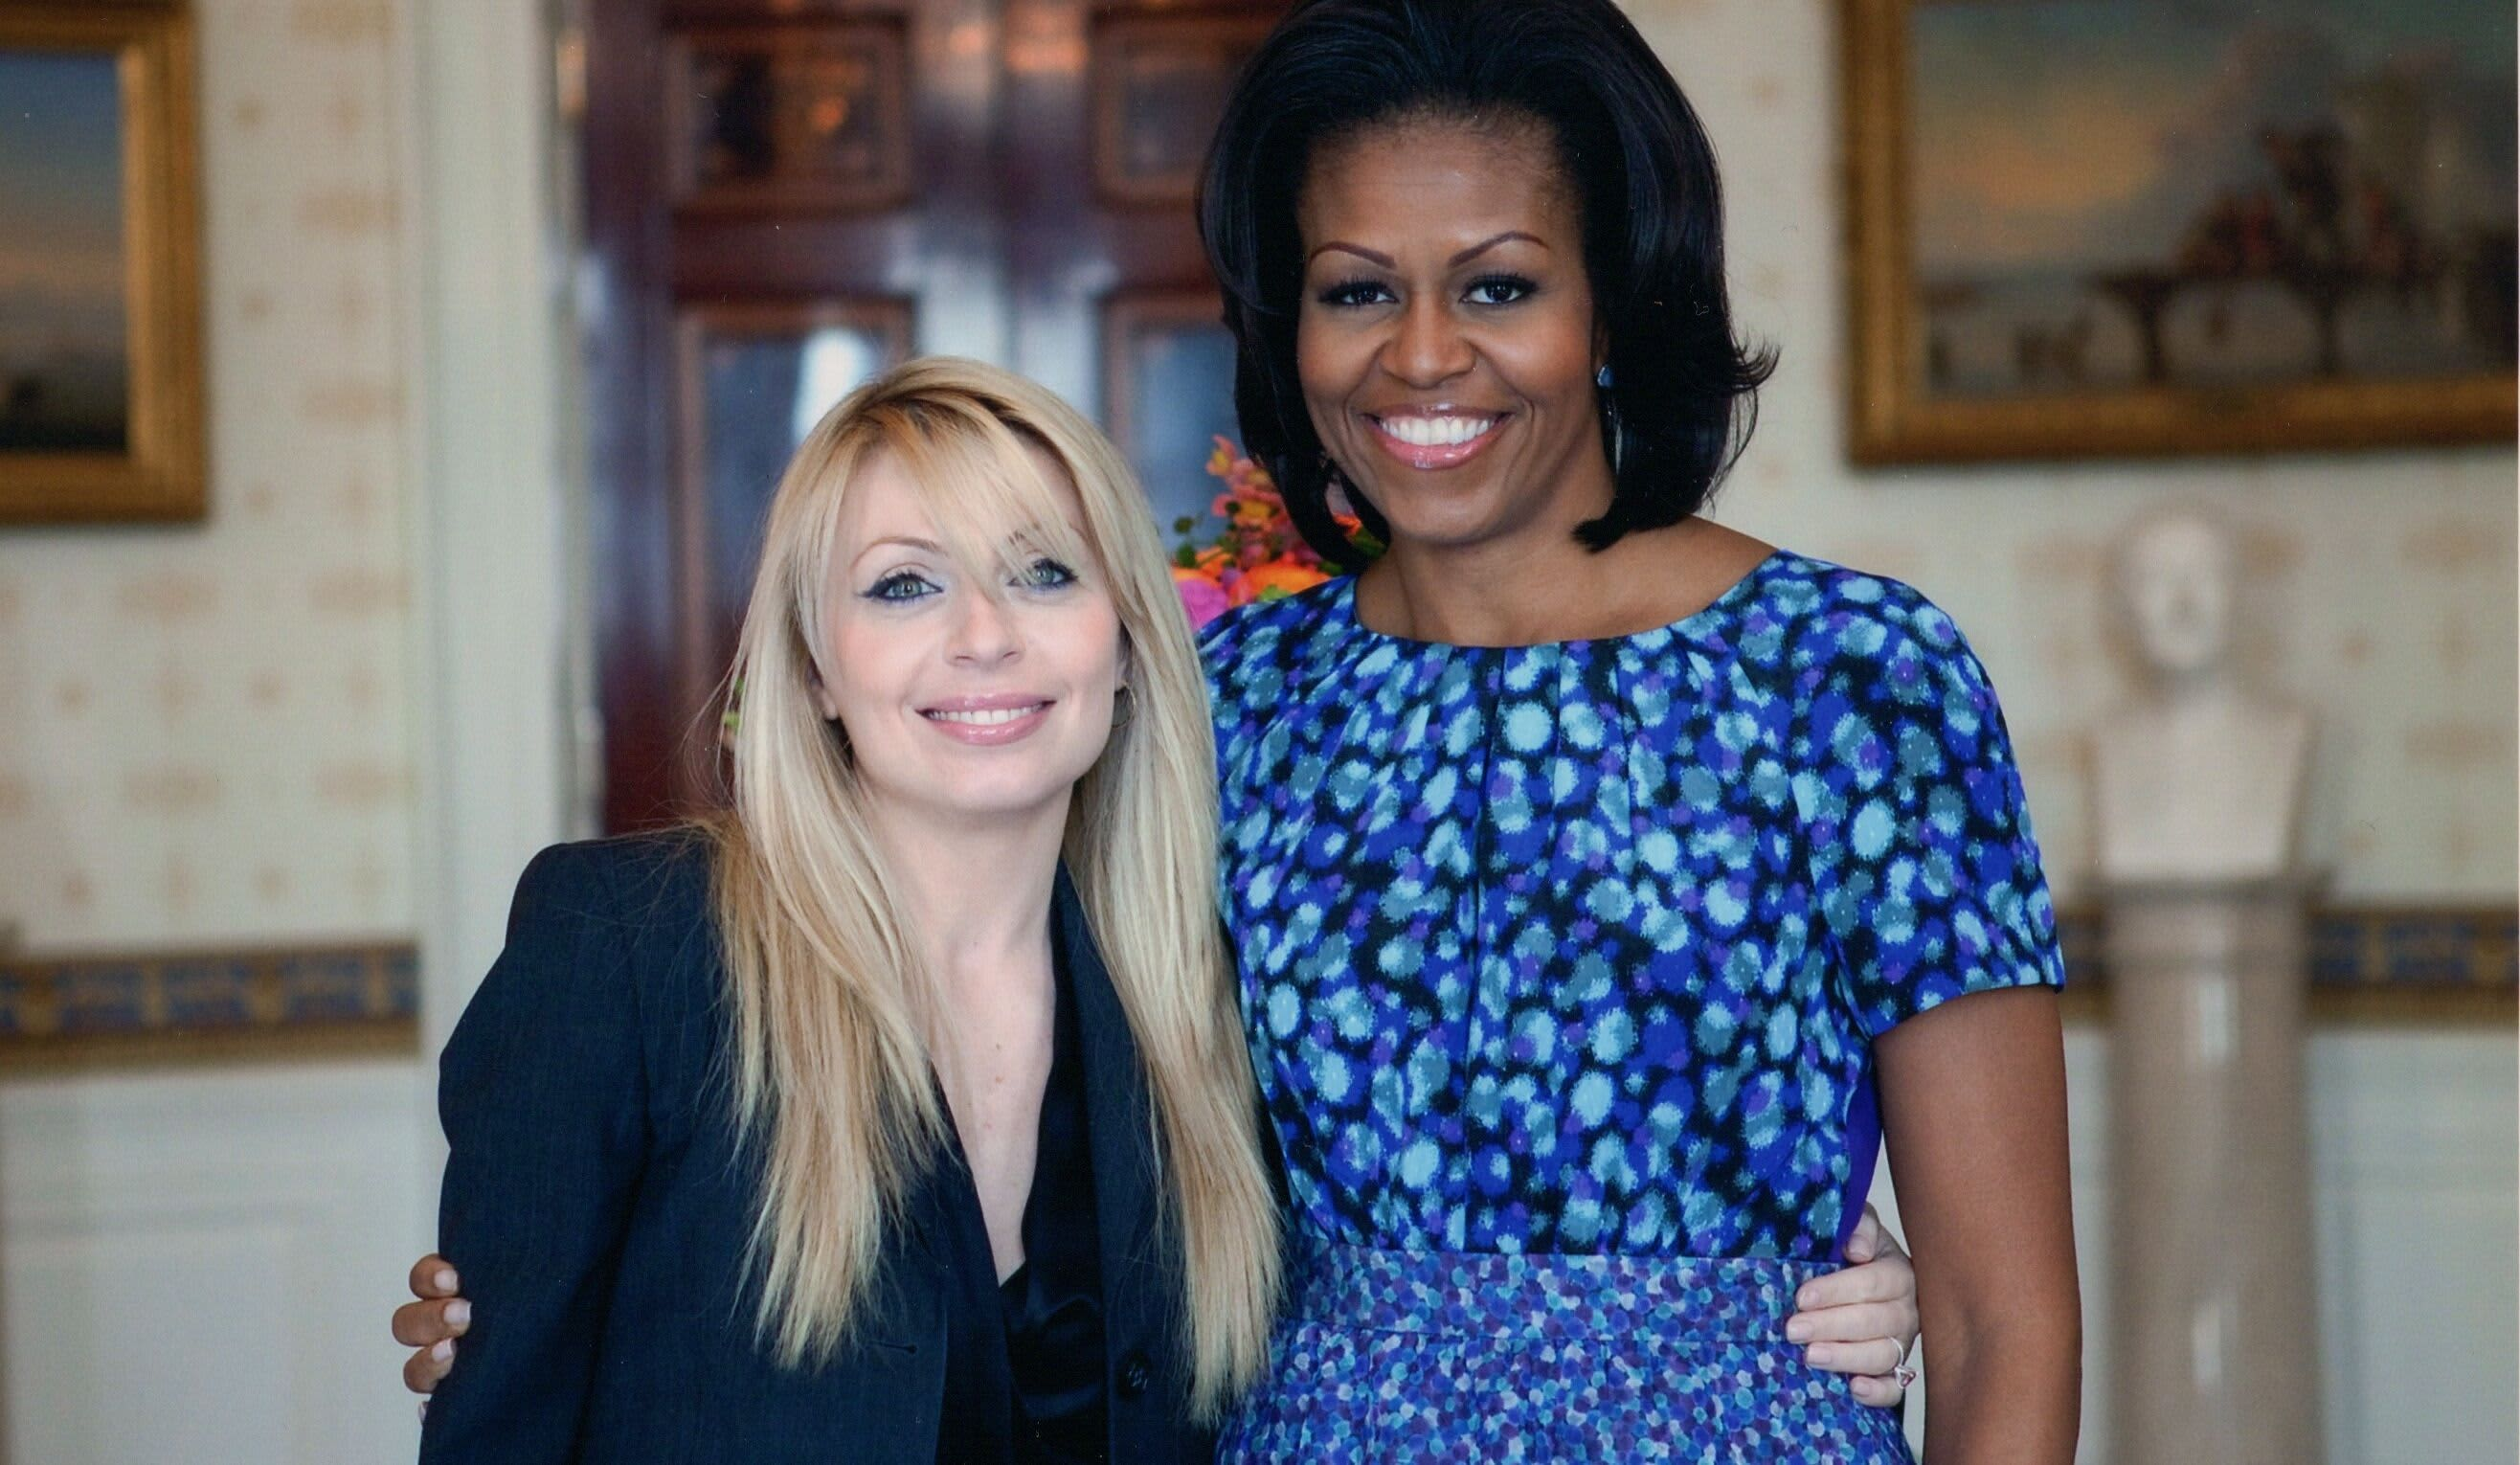 Former Secret Service Agent Recalls How She 'Could Do Nothing' to Protect Michelle Obama from 'Shockingly Racist' Abuse